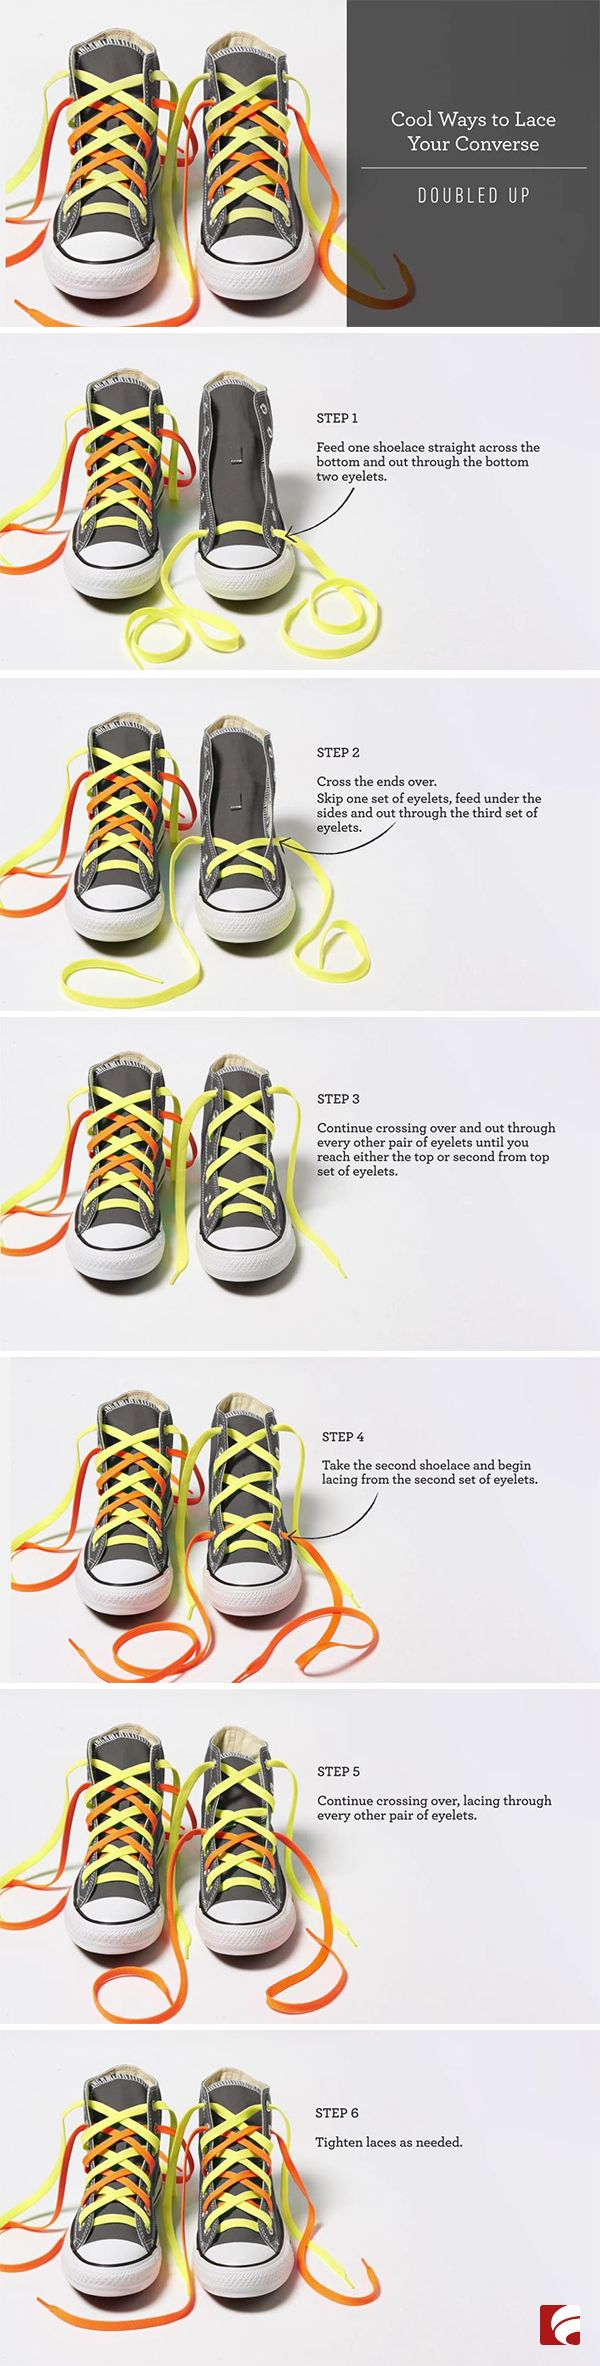 How to Lace Your Converse: Doubled Up. There's nothing wrong with a classic pair of grey Converse, but if you're itching to add a little pizzazz, just following the directions in this video for a stand-out look. All you need to start with is a pair of neutral Converse shoes and two different colored laces.